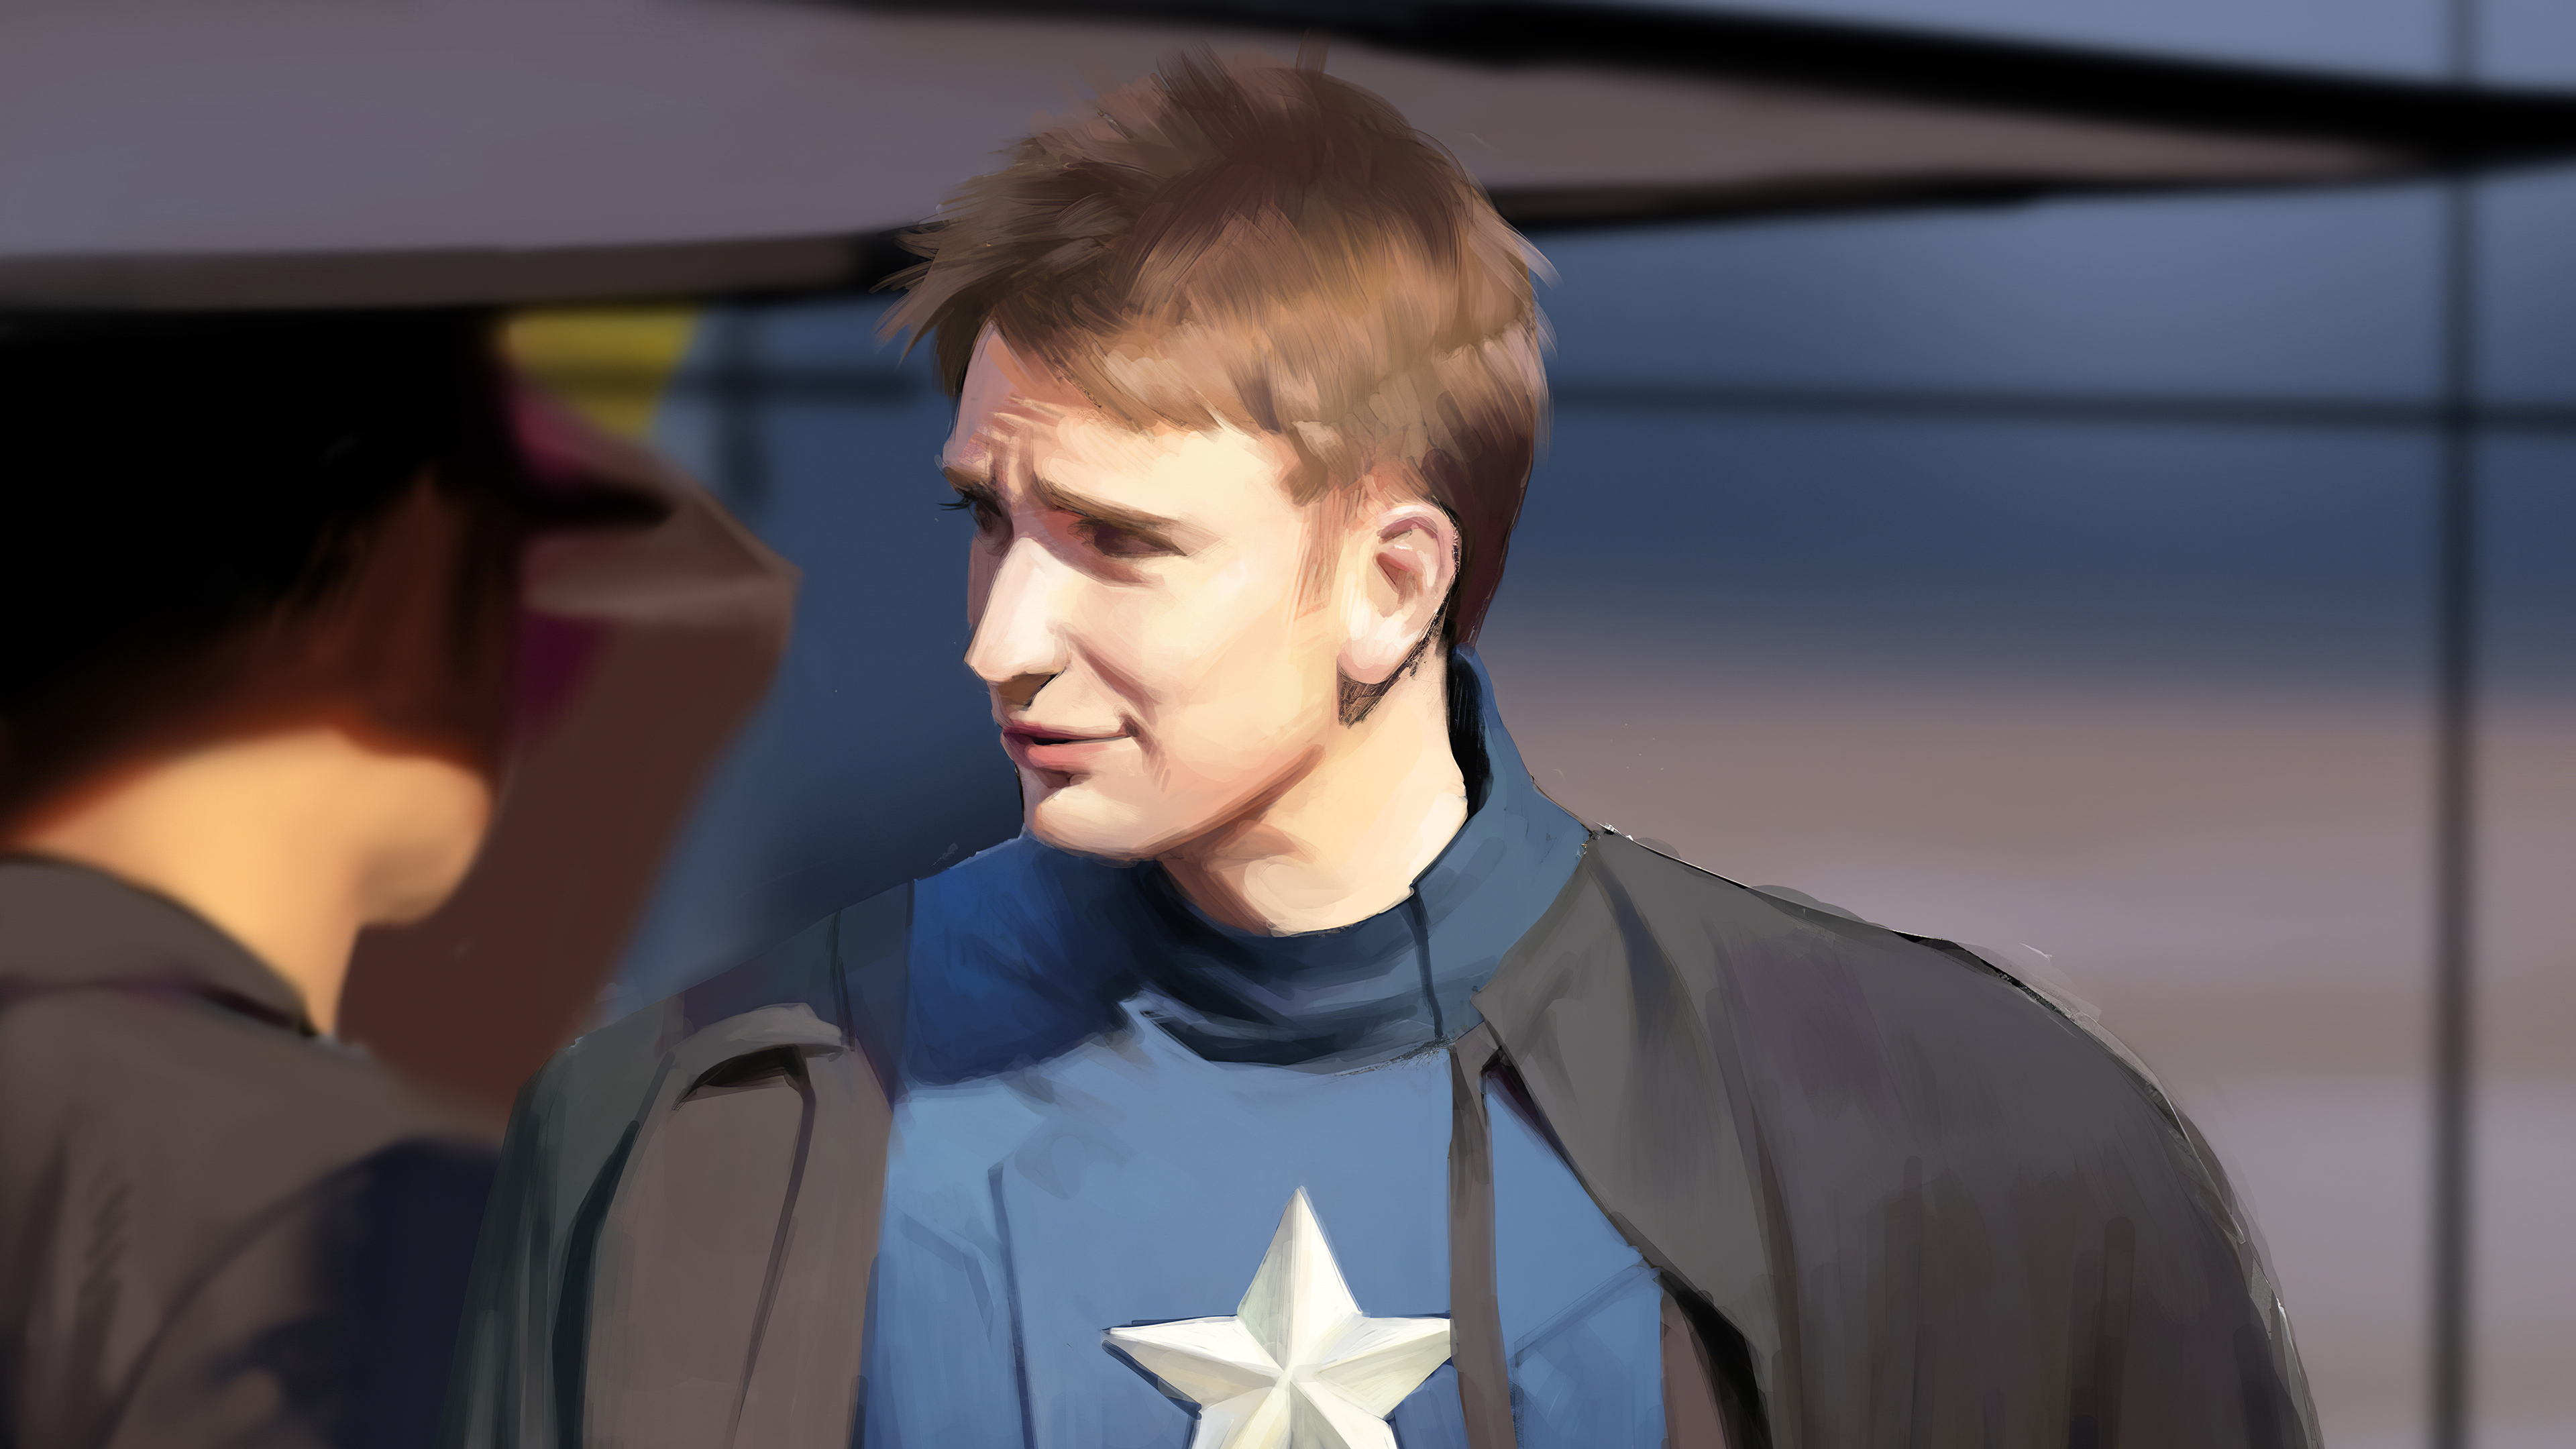 captain-america-digital-art-4k-1b.jpg